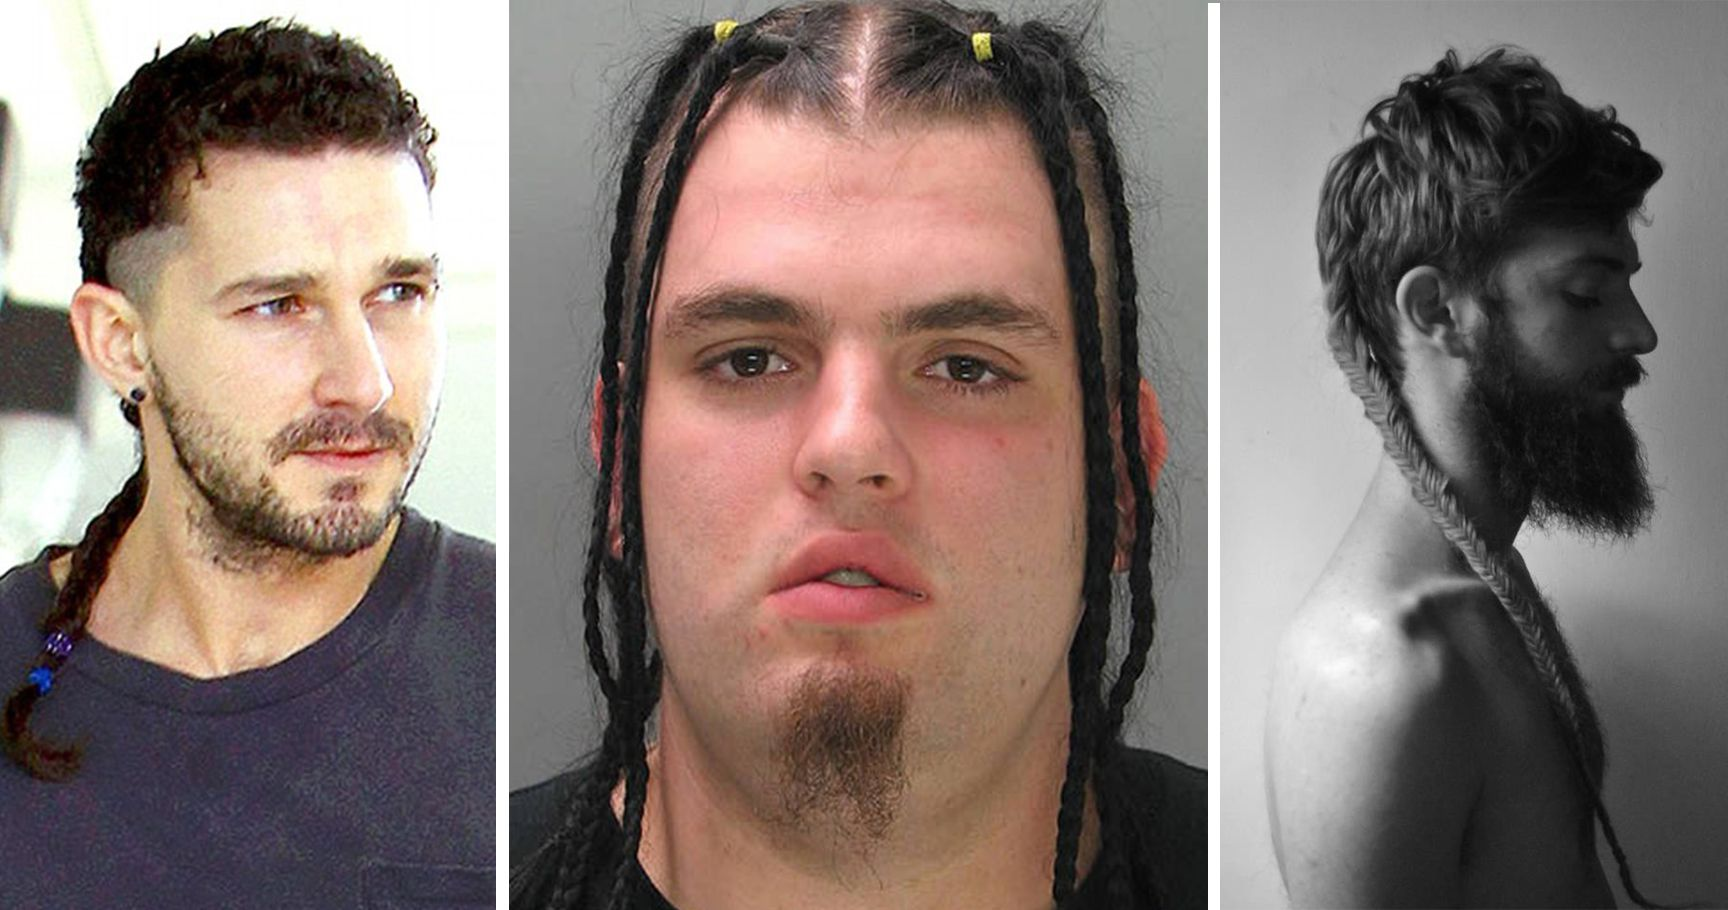 13 Of The Craziest Man Braids To Ever Grace The Internet